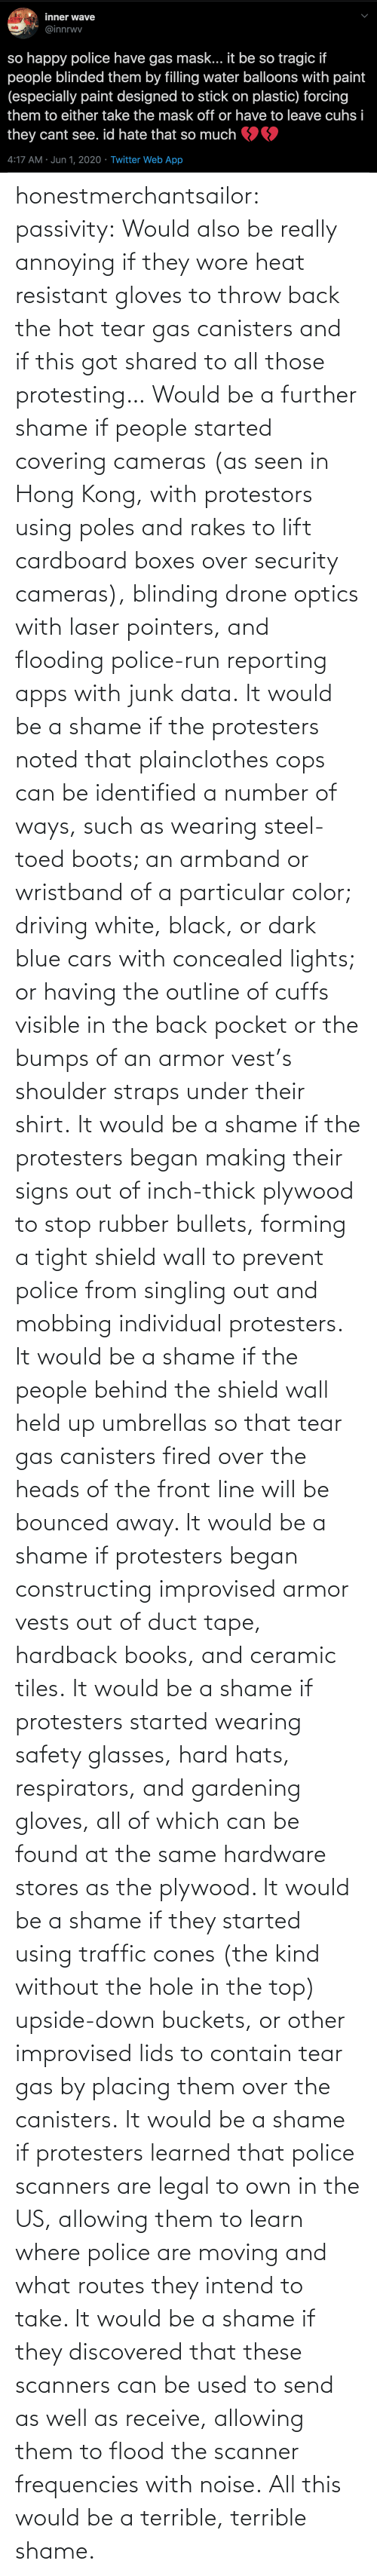 security: honestmerchantsailor: passivity: Would also be really annoying if they wore heat resistant gloves to throw back the hot tear gas canisters and if this got shared to all those protesting… Would be a further shame if people started covering cameras (as seen in Hong Kong, with protestors using poles and rakes to lift cardboard boxes over security cameras), blinding drone optics with laser pointers, and flooding police-run reporting apps with junk data. It would be a shame if the protesters noted that plainclothes cops can be identified a number of ways, such as wearing steel-toed boots; an armband or wristband of a particular color; driving white, black, or dark blue cars with concealed lights; or having the outline of cuffs visible in the back pocket or the bumps of an armor vest's shoulder straps under their shirt. It would be a shame if the protesters began making their signs out of inch-thick plywood to stop rubber bullets, forming a tight shield wall to prevent police from singling out and mobbing individual protesters. It would be a shame if the people behind the shield wall held up umbrellas so that tear gas canisters fired over the heads of the front line will be bounced away. It would be a shame if protesters began constructing improvised armor vests out of duct tape, hardback books, and ceramic tiles. It would be a shame if protesters started wearing safety glasses, hard hats, respirators, and gardening gloves, all of which can be found at the same hardware stores as the plywood. It would be a shame if they started using traffic cones (the kind without the hole in the top) upside-down buckets, or other improvised lids to contain tear gas by placing them over the canisters. It would be a shame if protesters learned that police scanners are legal to own in the US, allowing them to learn where police are moving and what routes they intend to take. It would be a shame if they discovered that these scanners can be used to send as well as receive, allowing them to flood the scanner frequencies with noise. All this would be a terrible, terrible shame.